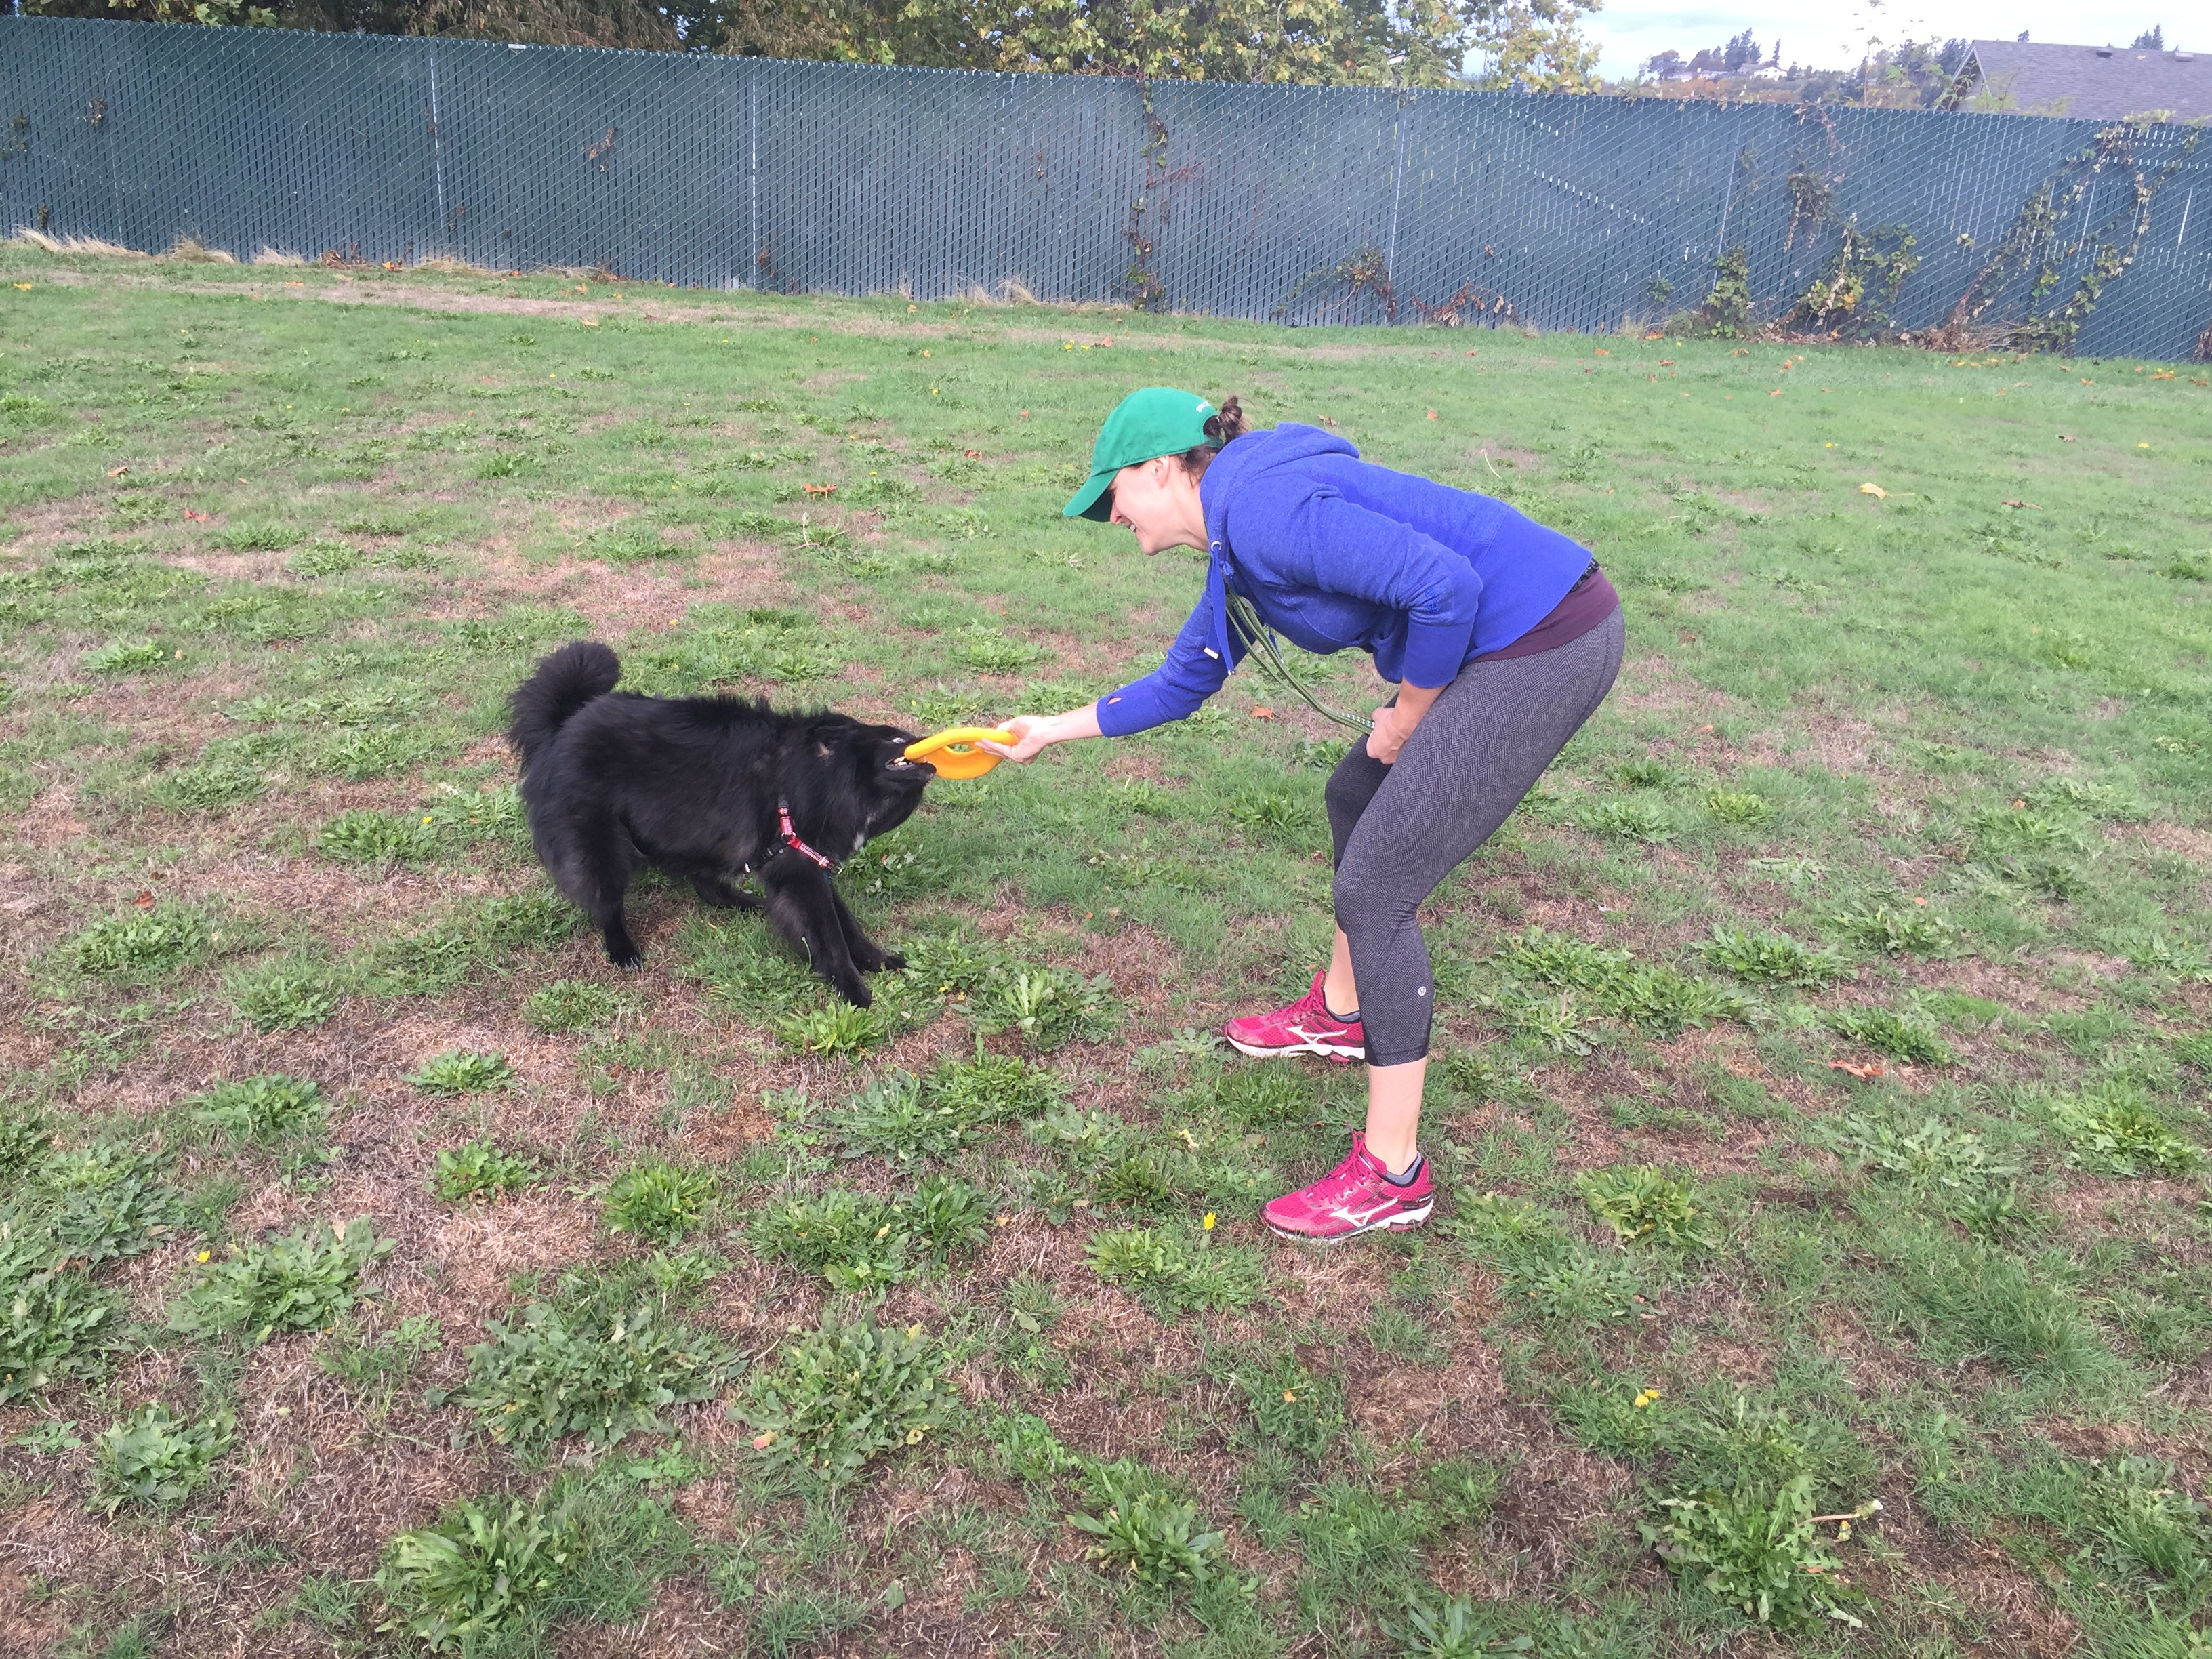 The Zogoflex Air Dash Frisbee Is $17 On Chewy If You're Looking For A New  Toy To Throw For Your Dog In Your Yard Or At Your Local Dog Park,